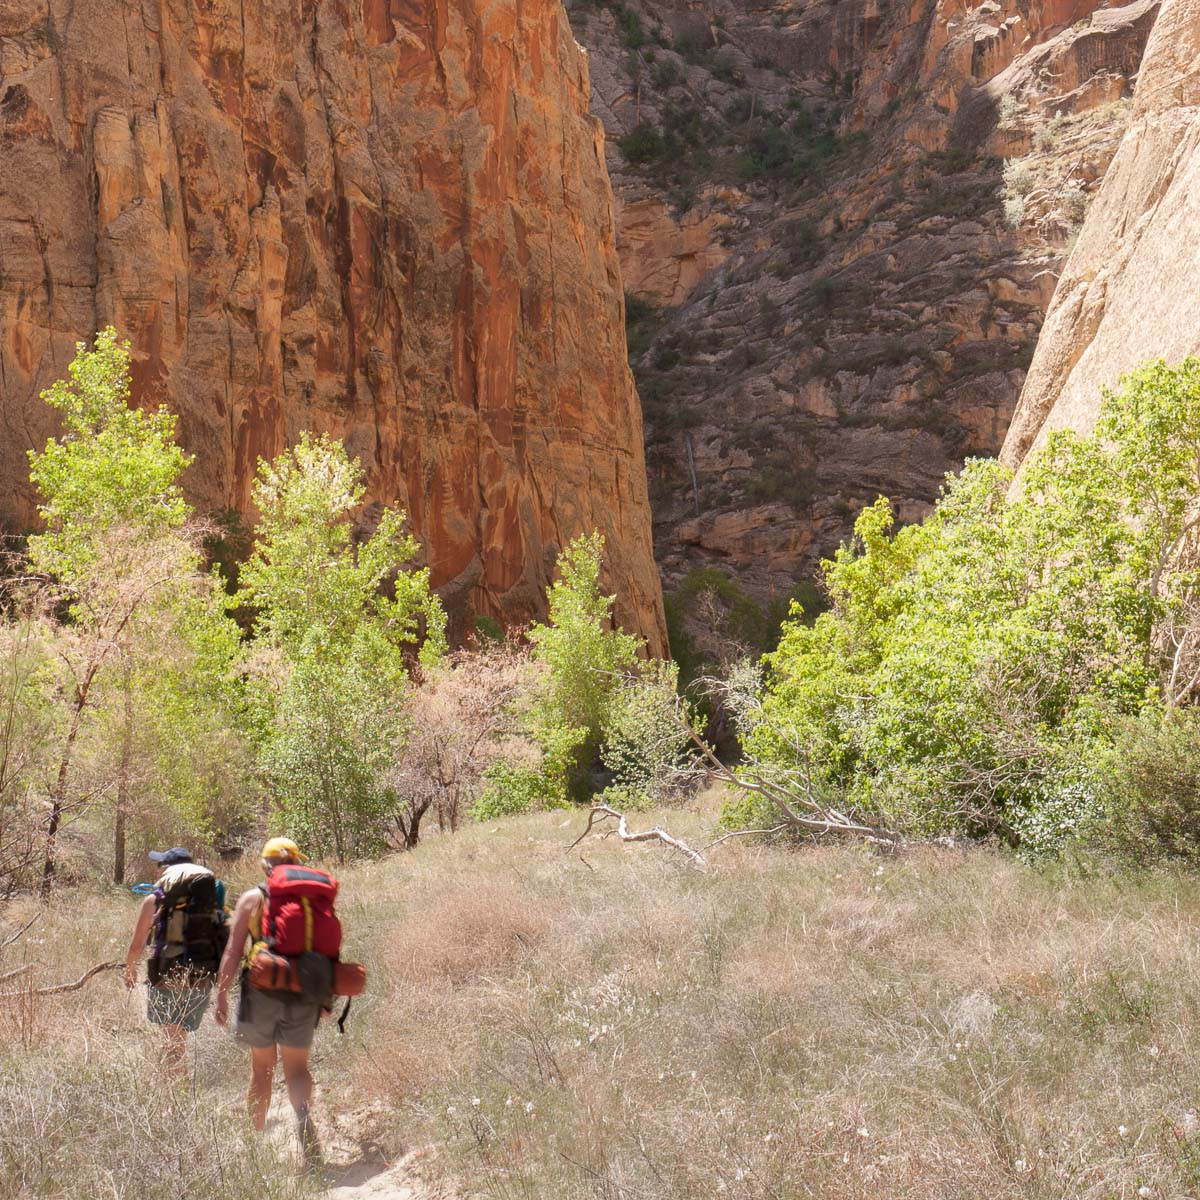 hiking in upper escalante river canyon